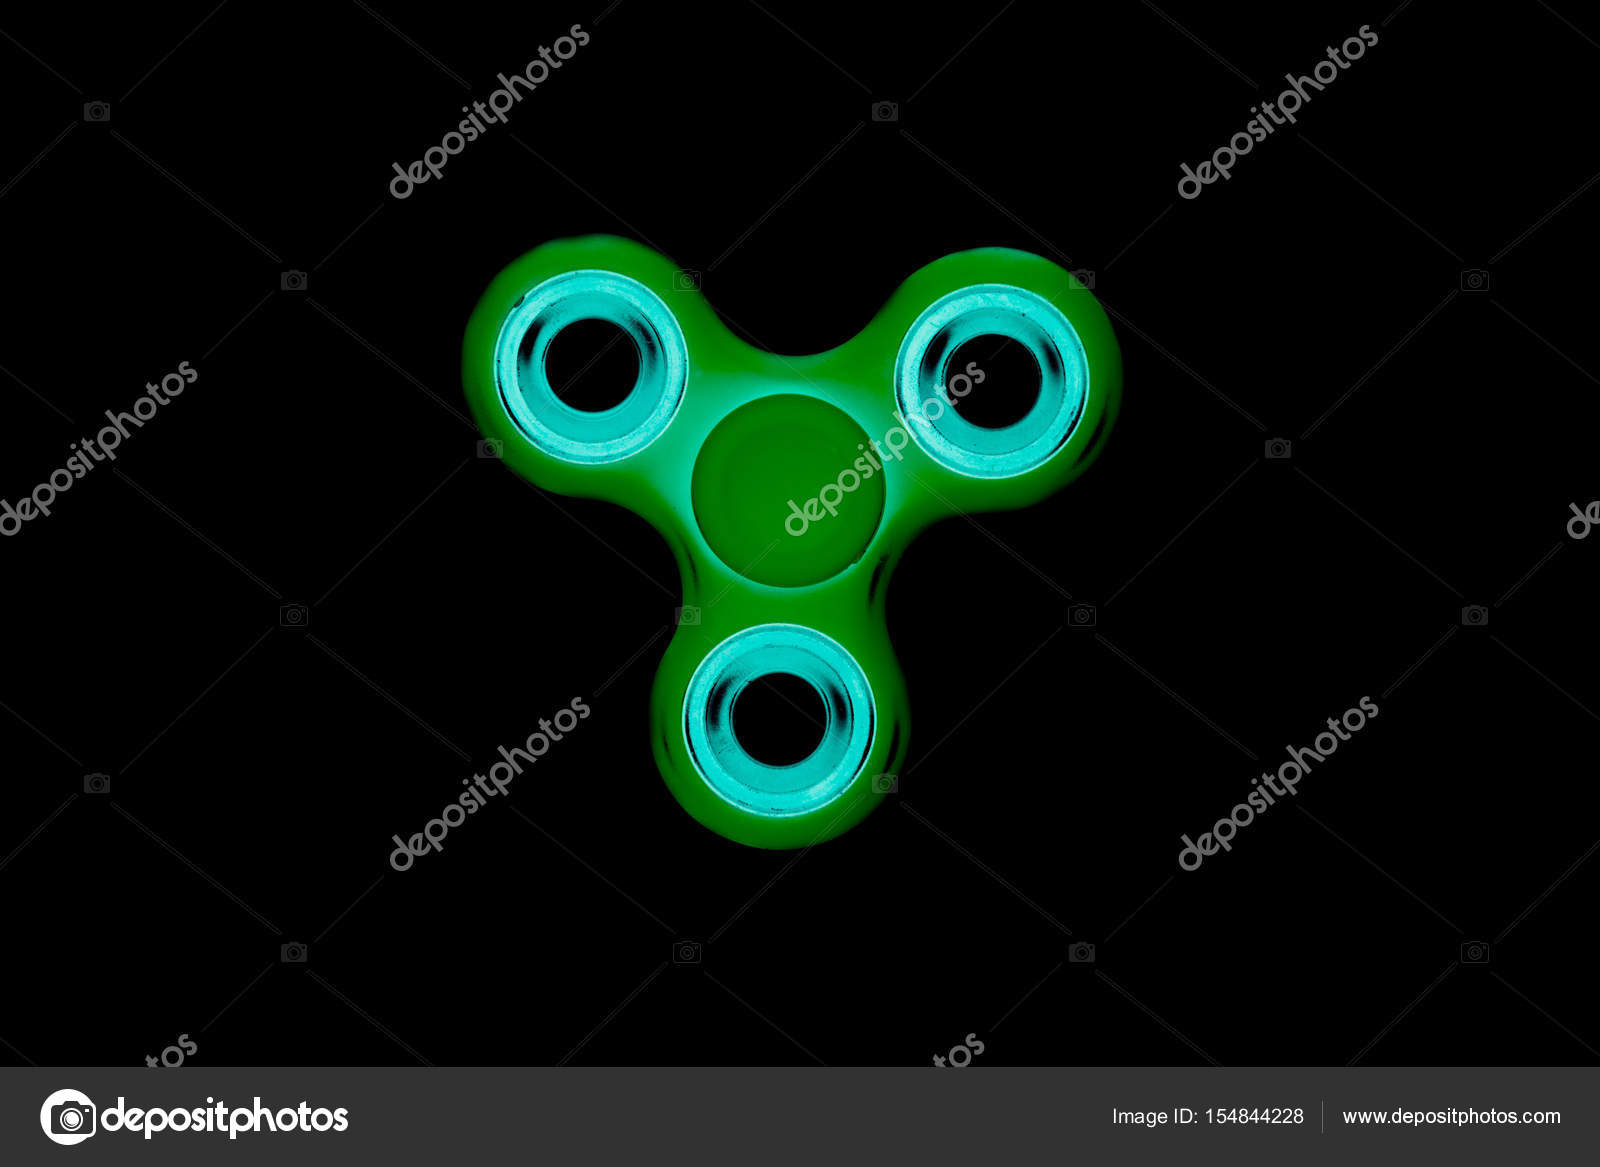 Green Fidget Spinner In Black Isolated Background For Stress Release During Work Stock Photo